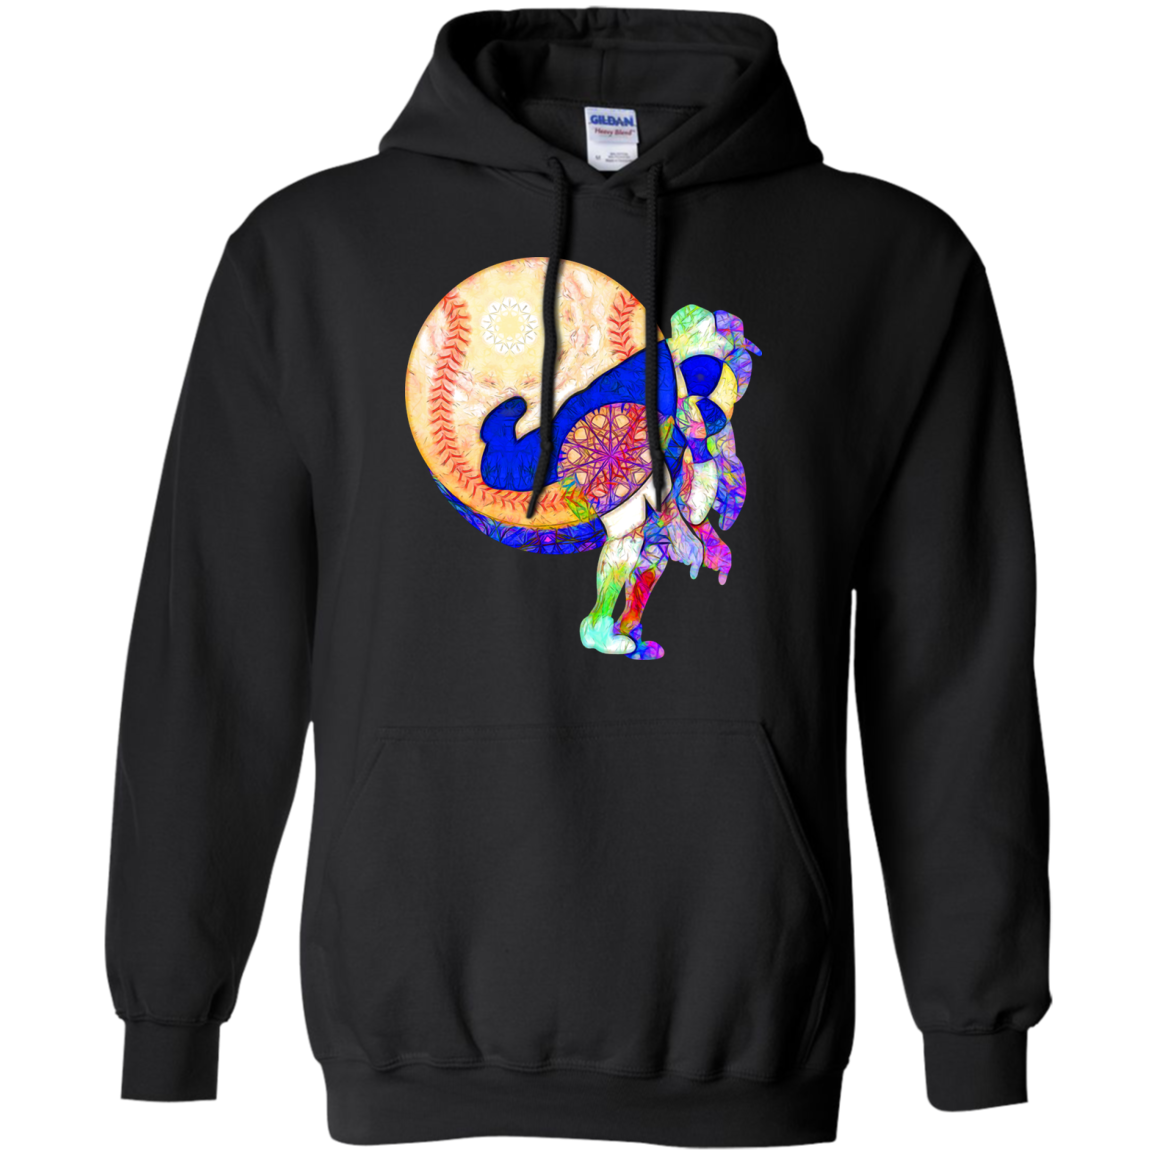 Baseball Pitcher Psychedelic Sweatshirt T-Shirt & Hoodie - The Sun Cat